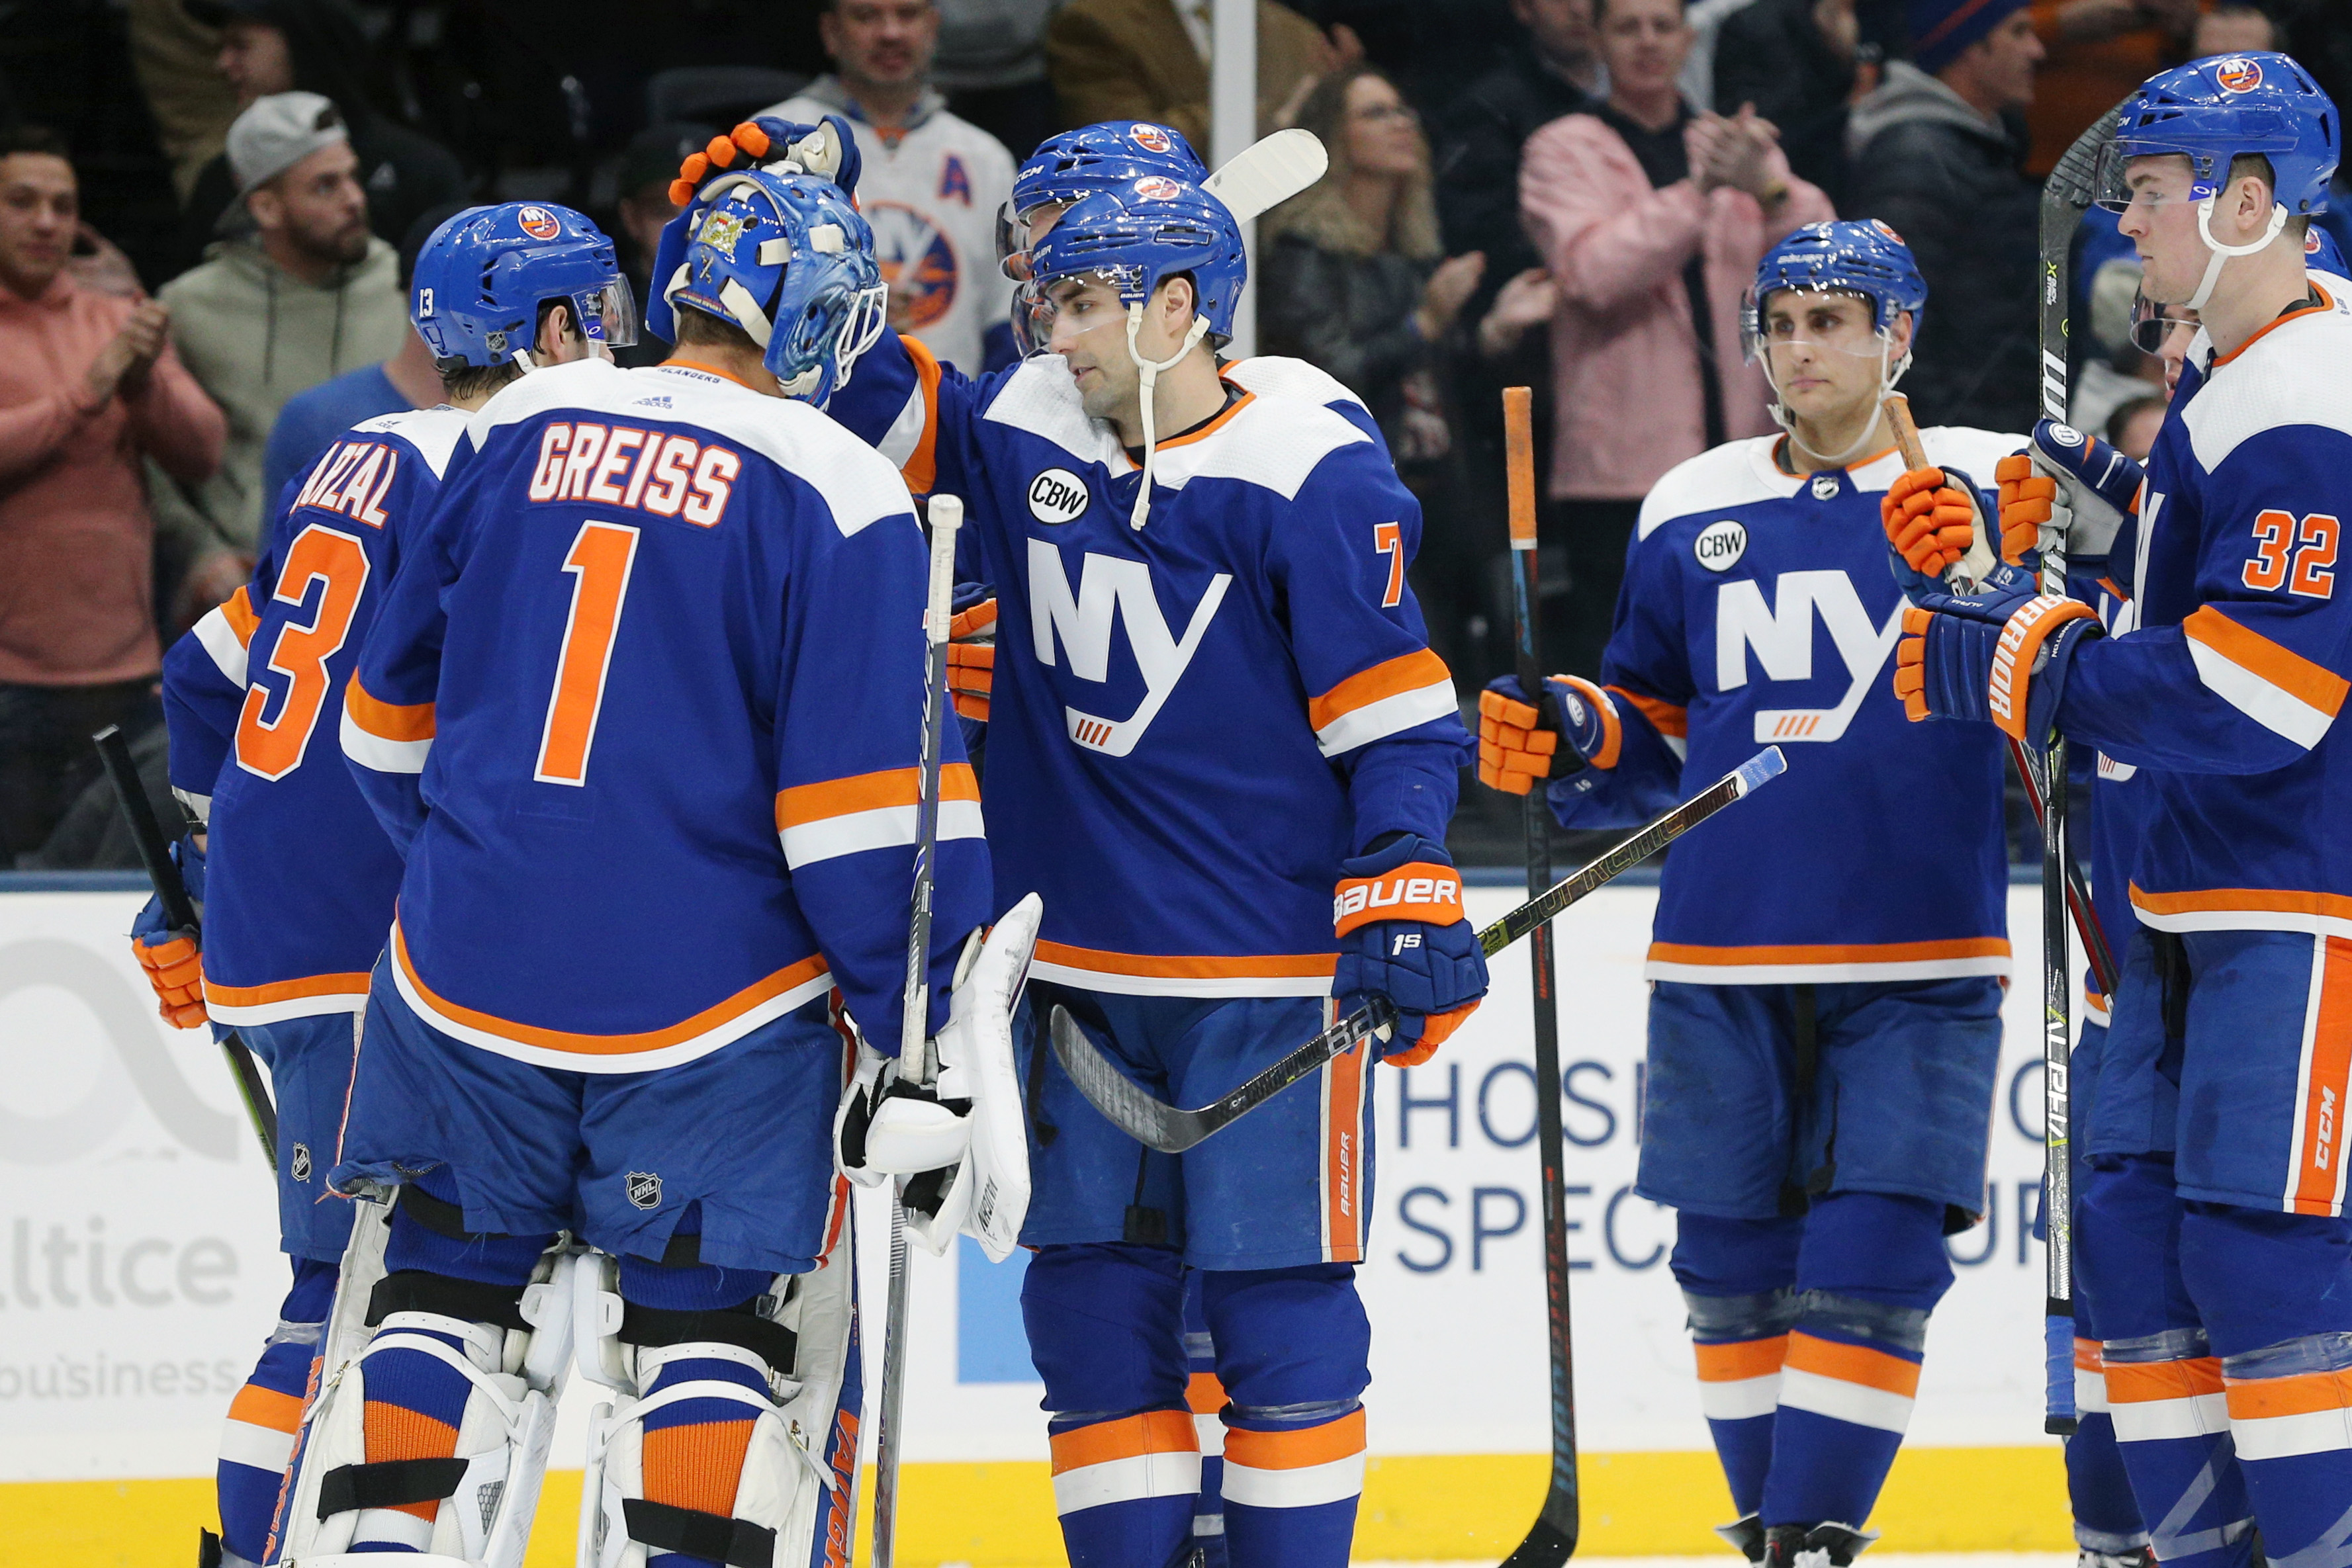 Mar 5, 2019; Uniondale, NY, USA; New York Islanders goalie Thomas Greiss (1) celebrates with teammates after defeating the Ottawa Senators in a shootout at Nassau Veterans Memorial Coliseum. Mandatory Credit: Brad Penner-USA TODAY Sports